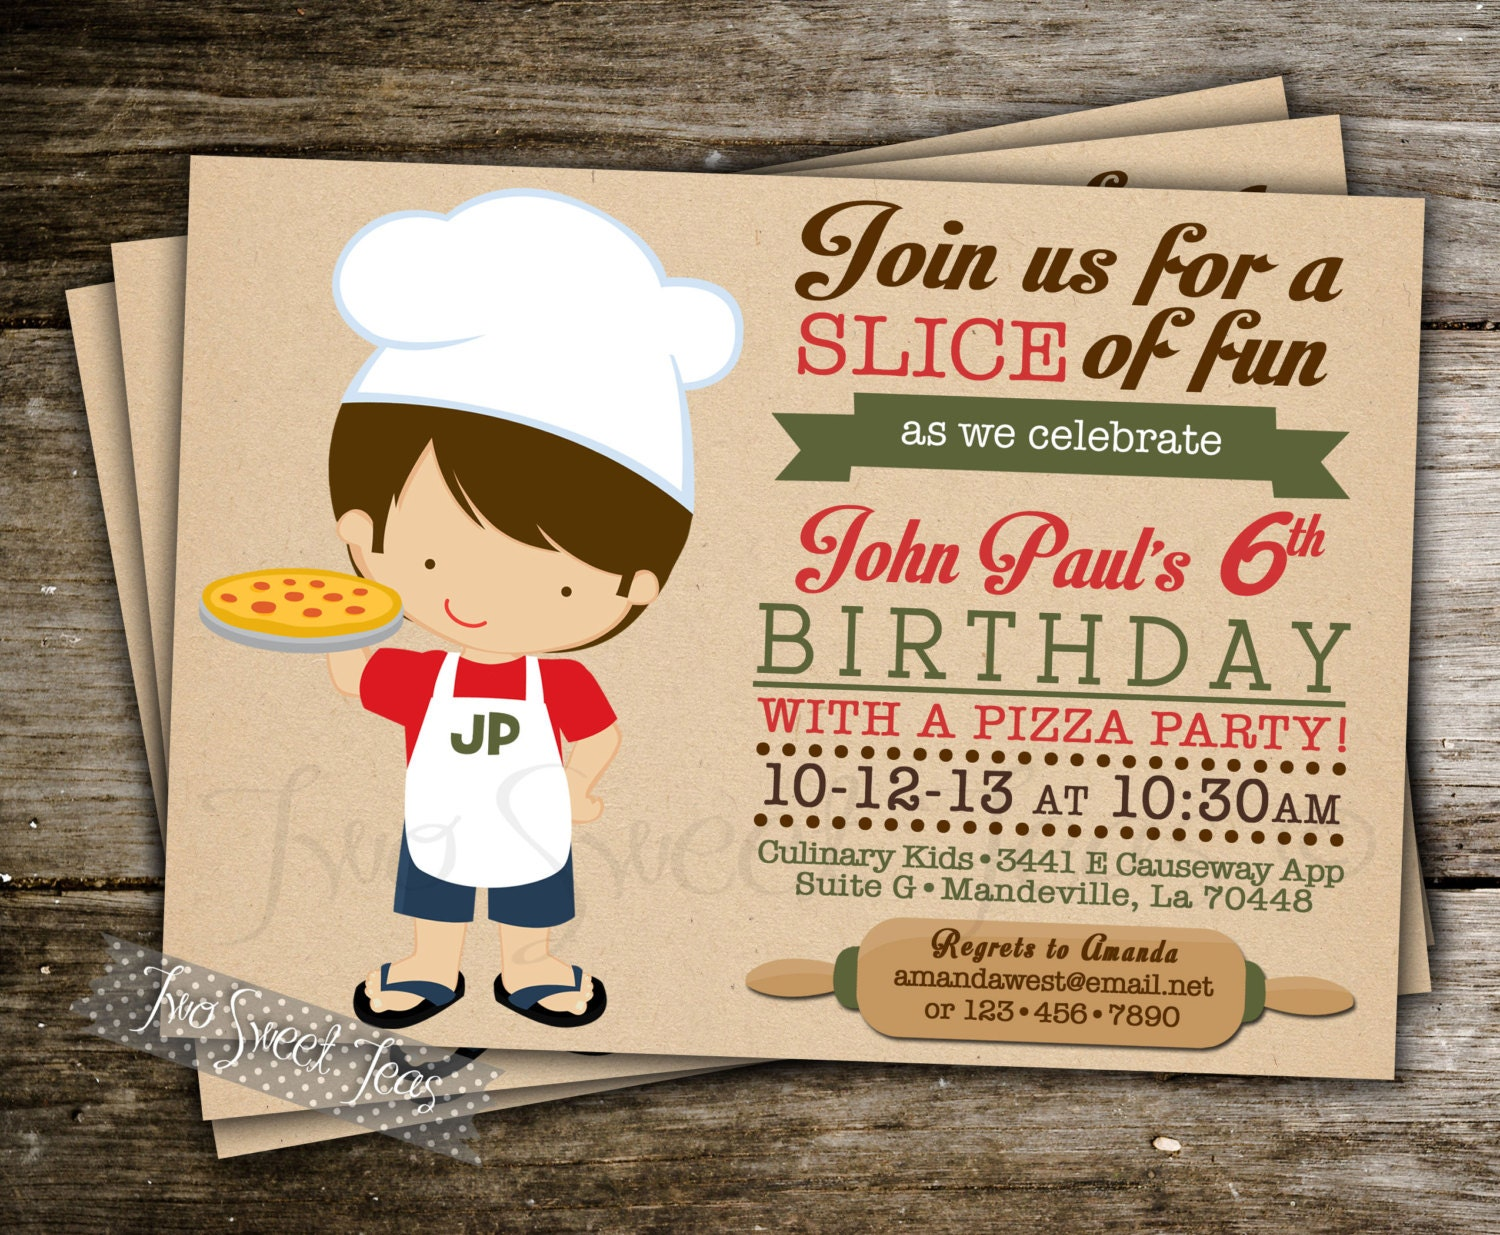 Pizza Party Invitation is great invitation sample